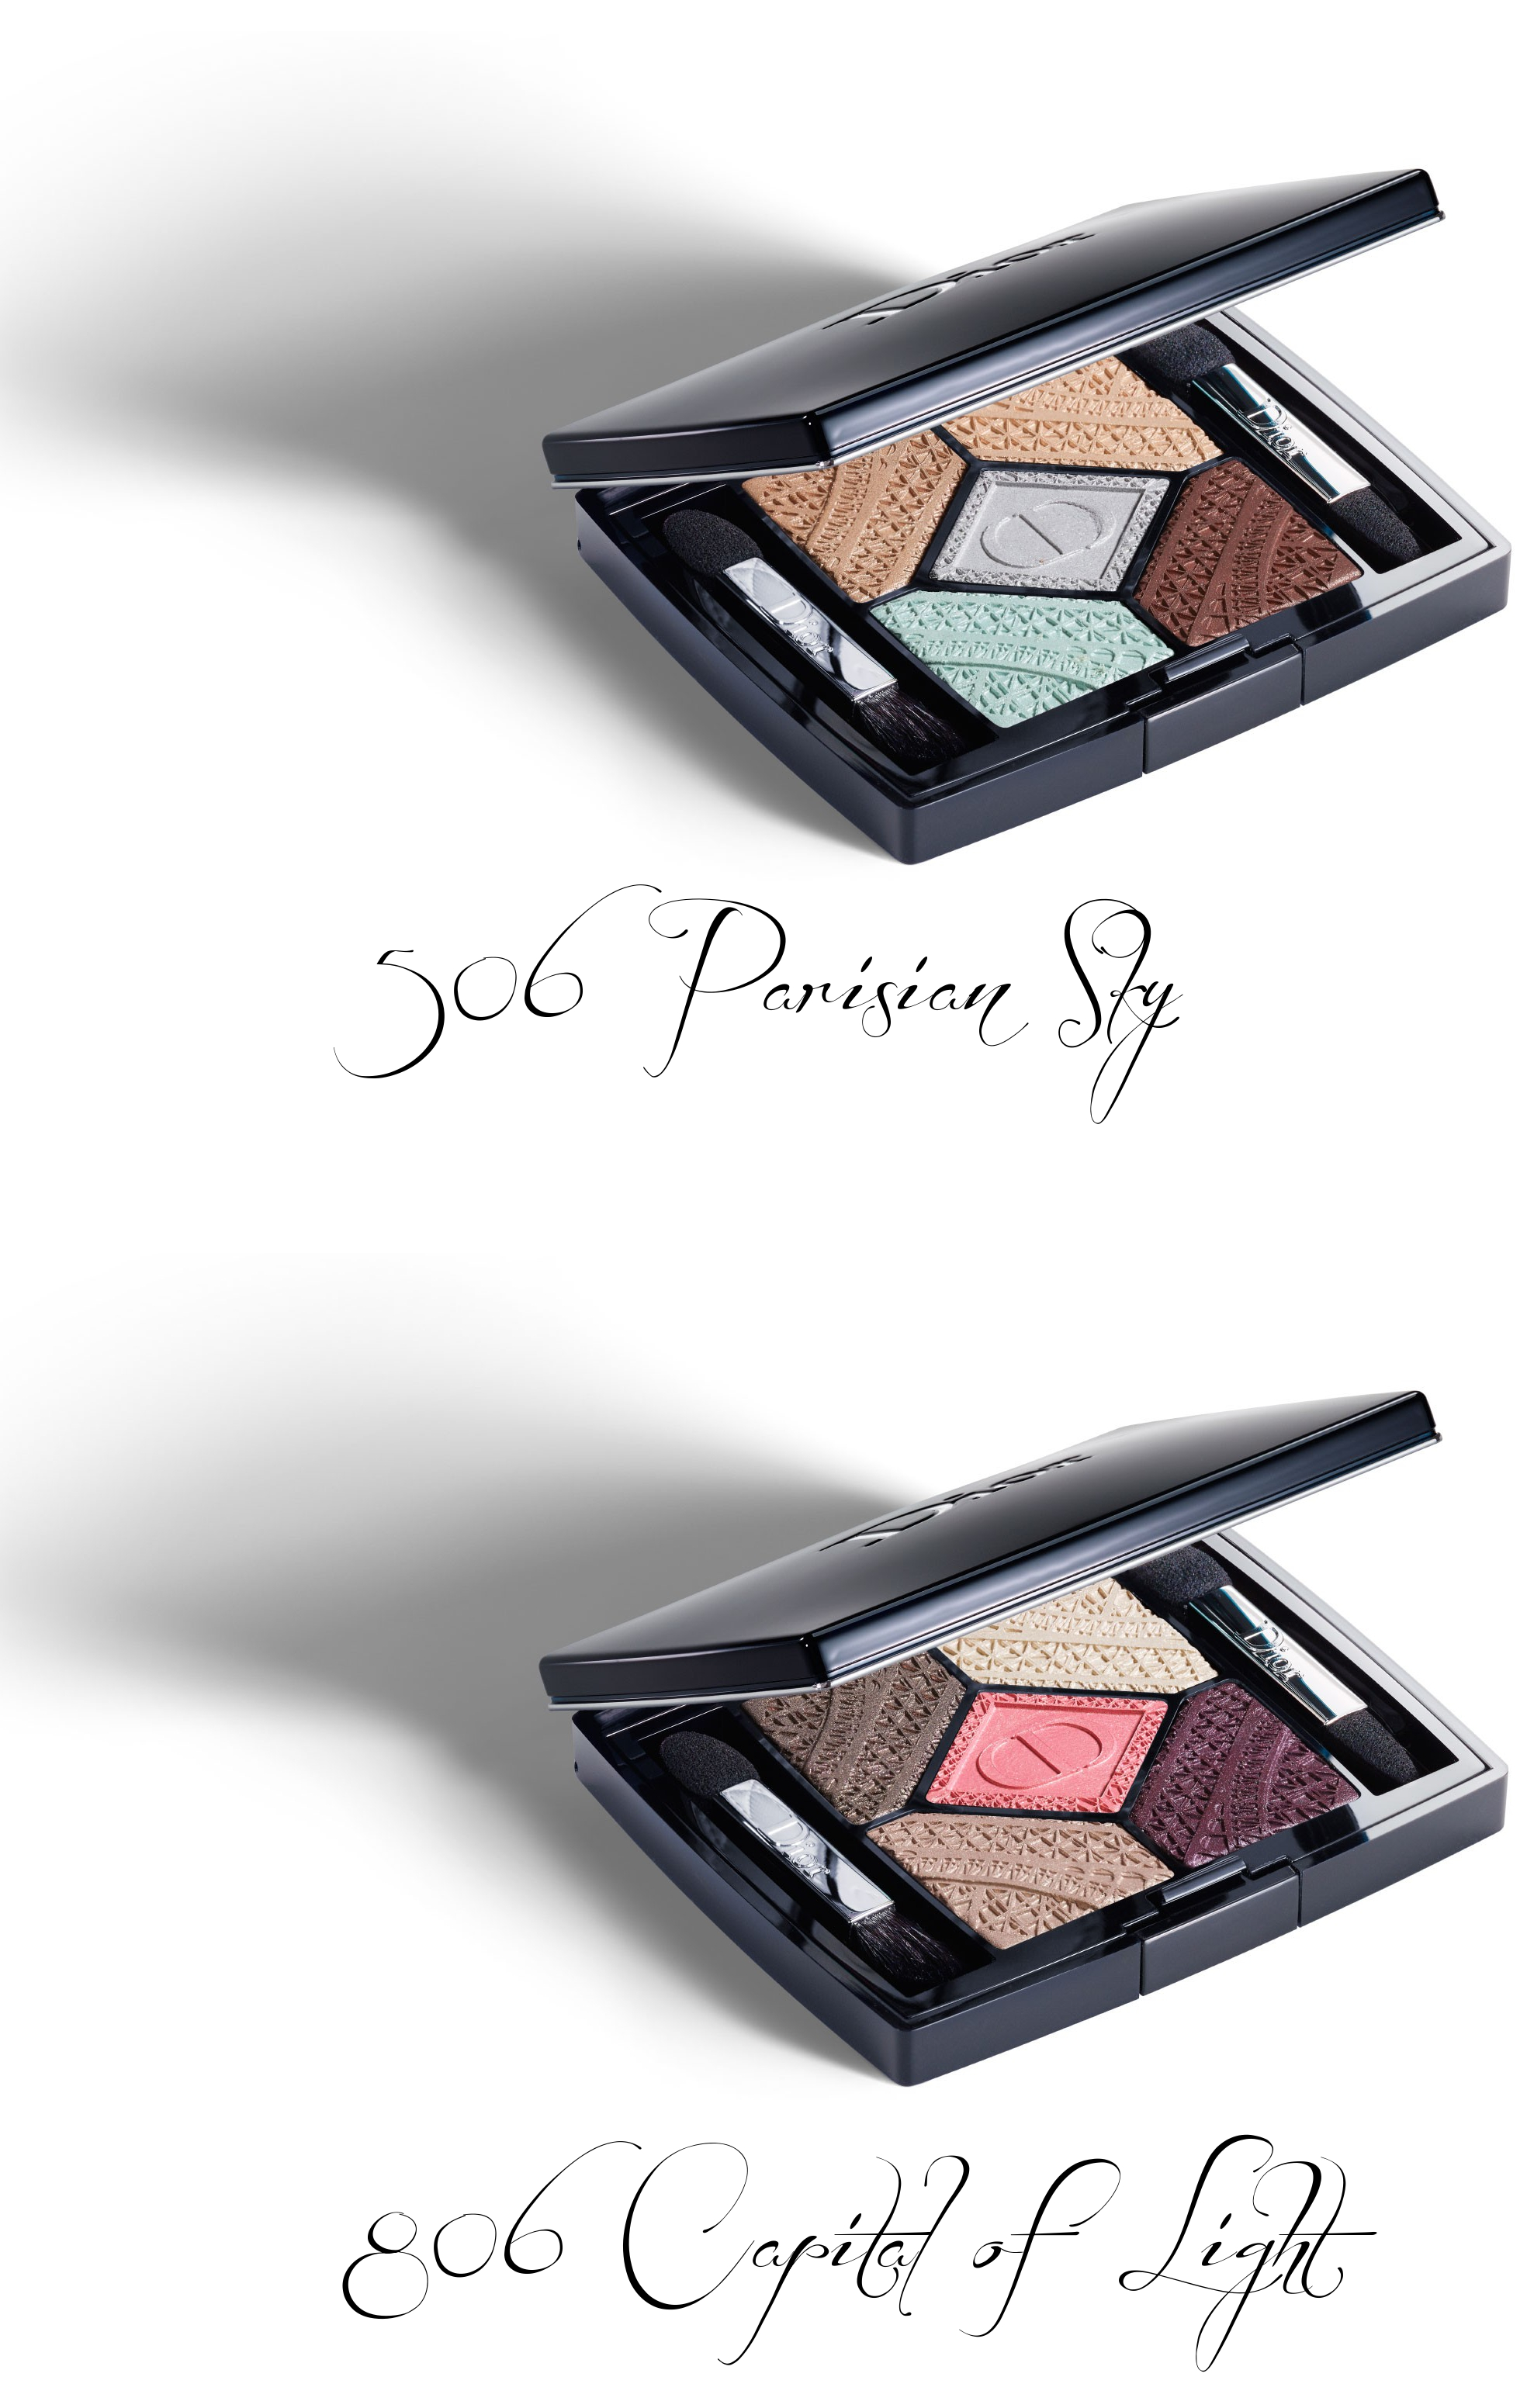 Dior kolekcja Autumn/Fall 2016 Skyline 5 Couleurs 506 Parisian Sky, 806 Capital of Light